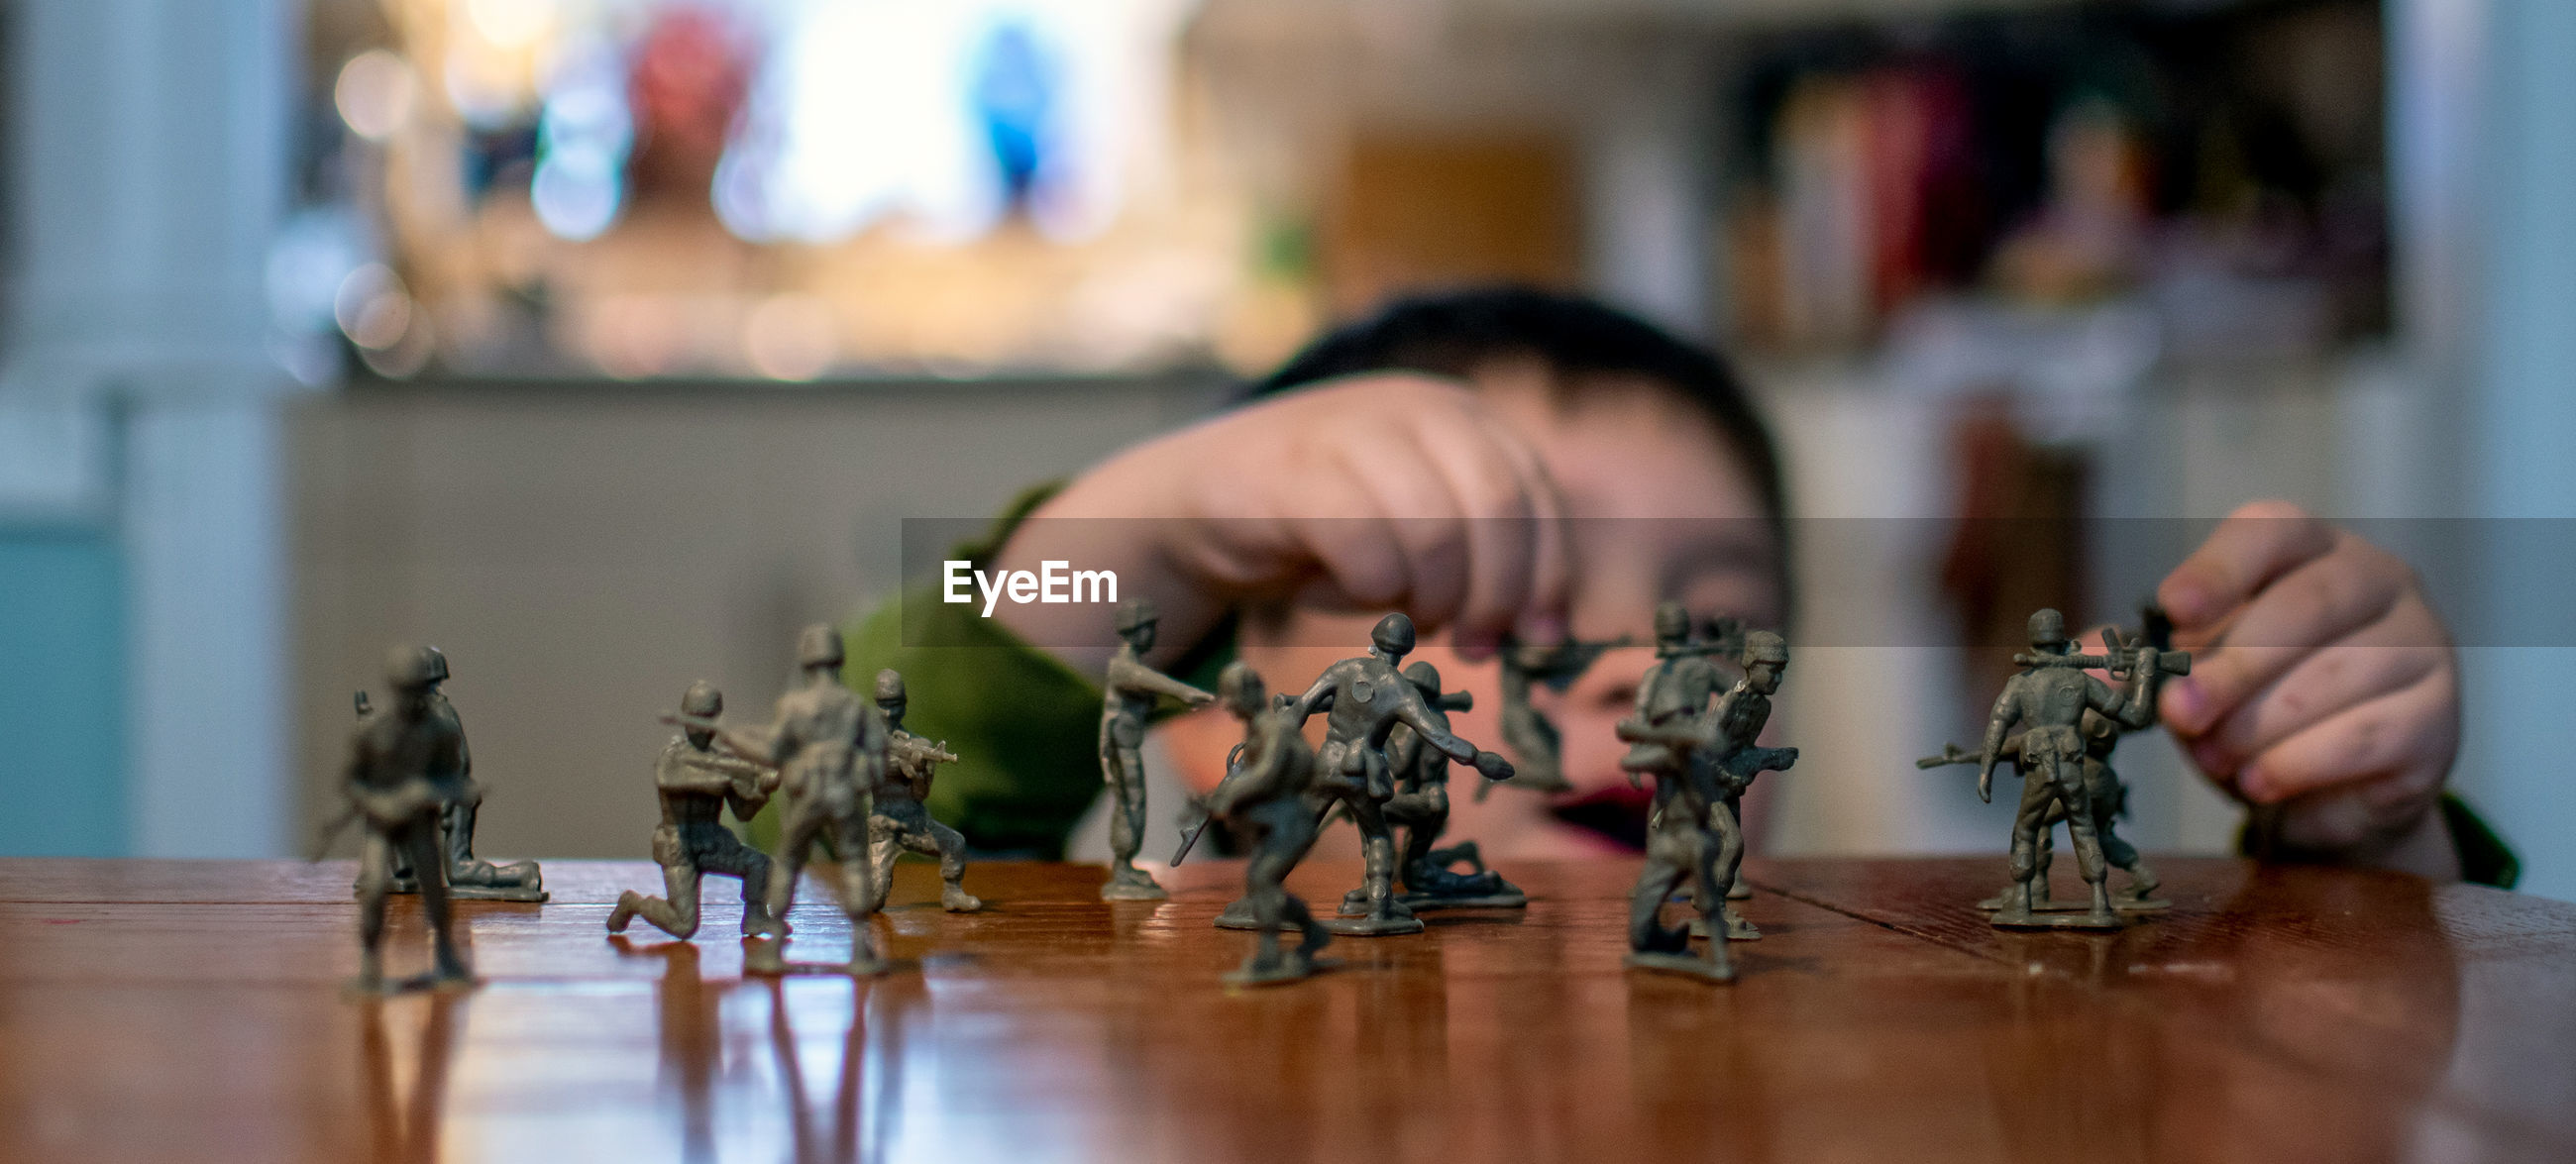 Small hands move toy soldiers around a mock battle on a tabletop